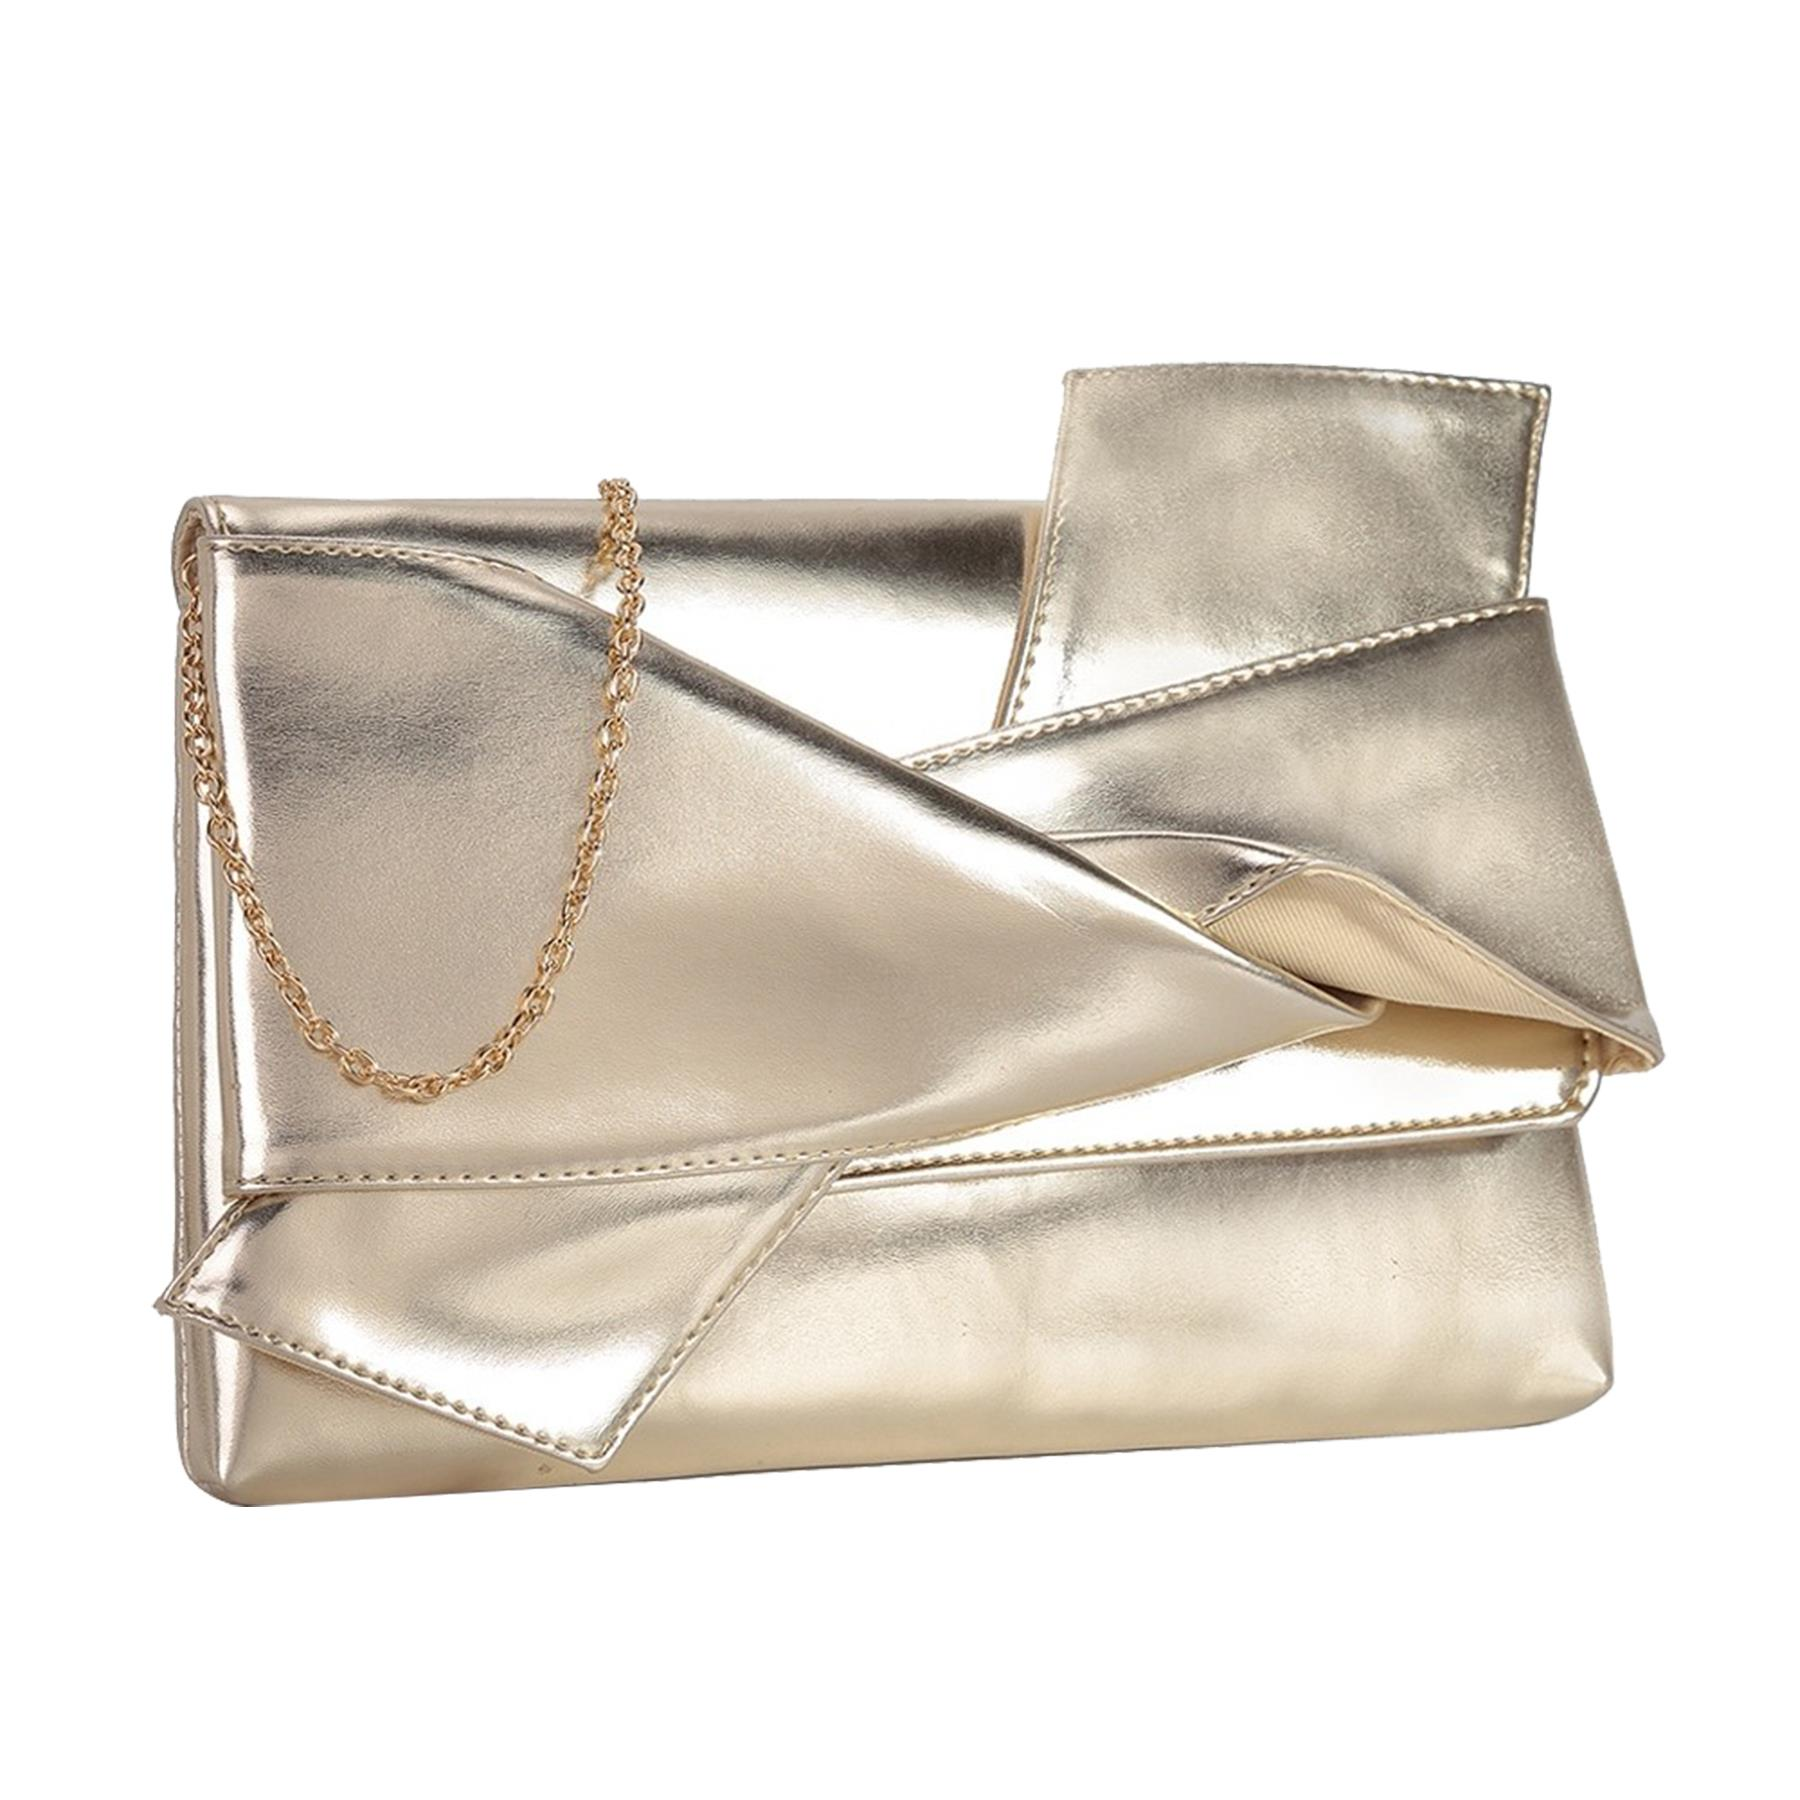 New-Knot-Detail-Shiny-Synthetic-Leather-Ladies-Party-Clutch-Bag-Purse thumbnail 9